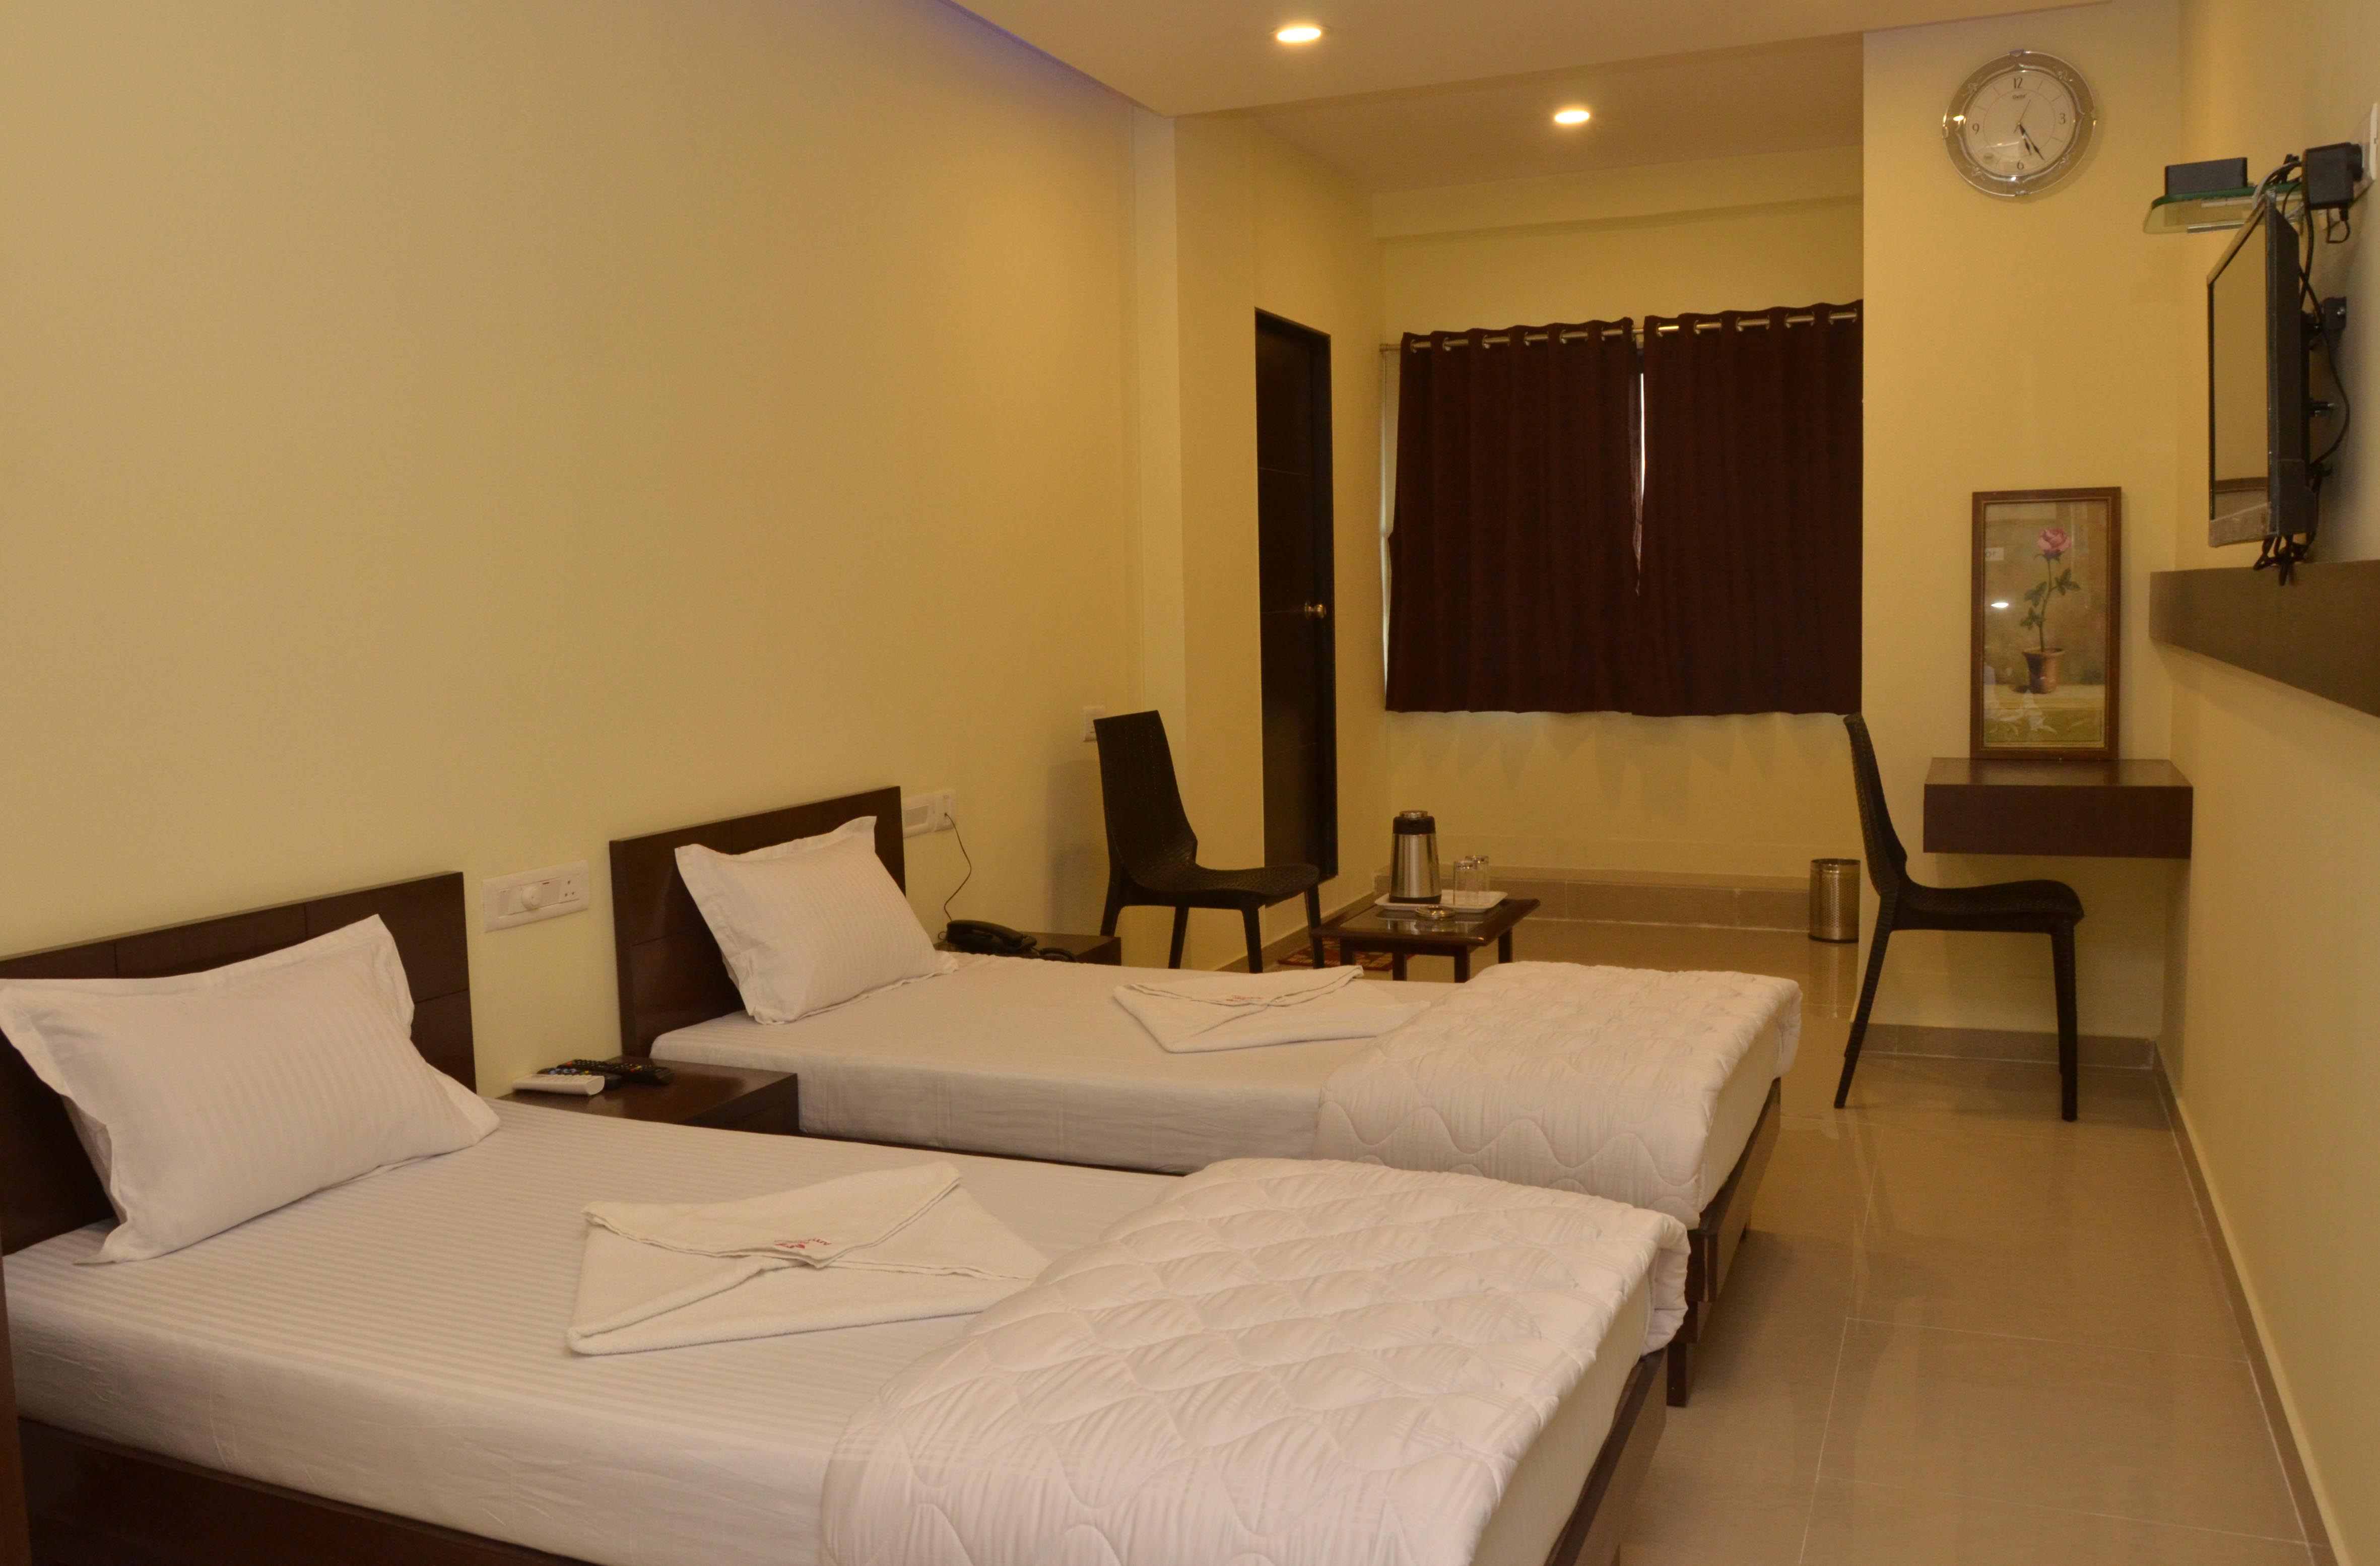 Rooms Two Beds- Hotel Ambience